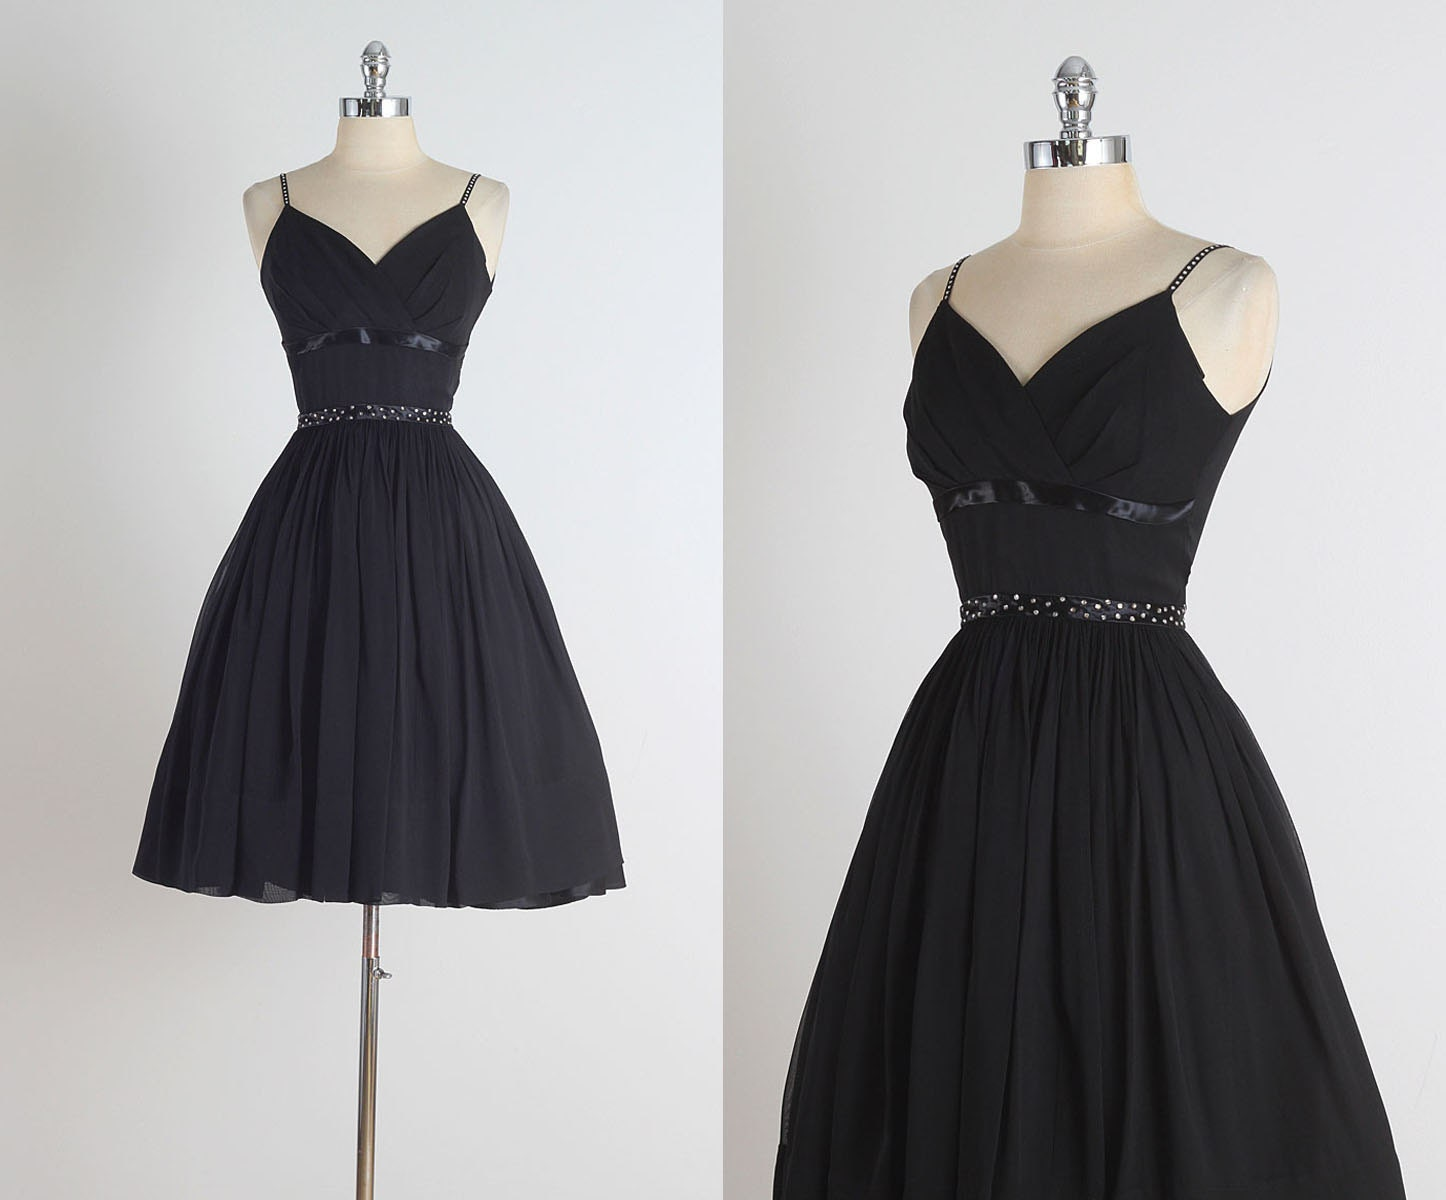 the gallery for gt vintage cocktail dresses 1950s